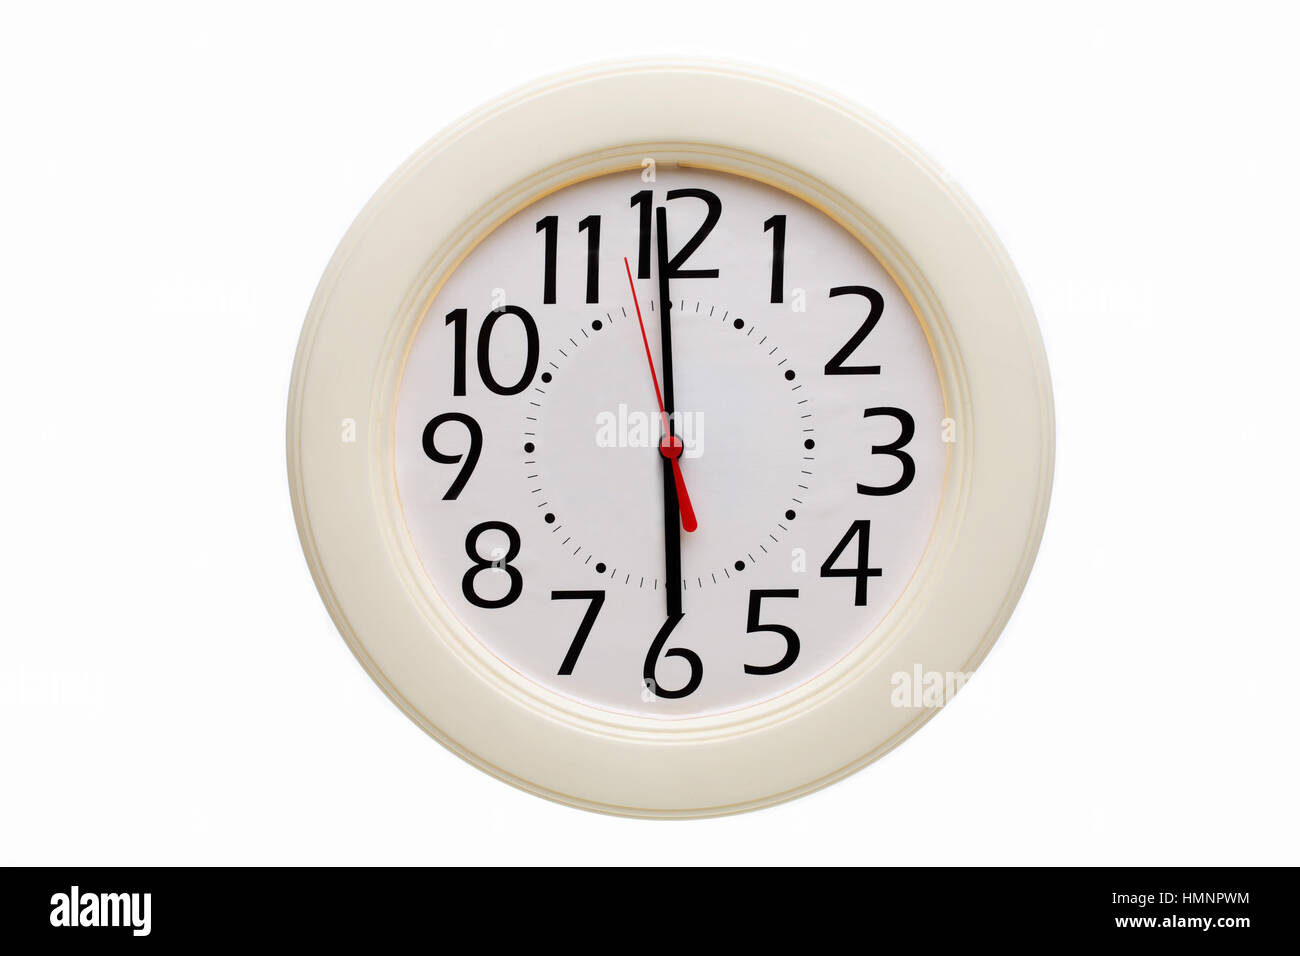 White analog wall clock showing 6:00 o'clock on white background - Stock Image